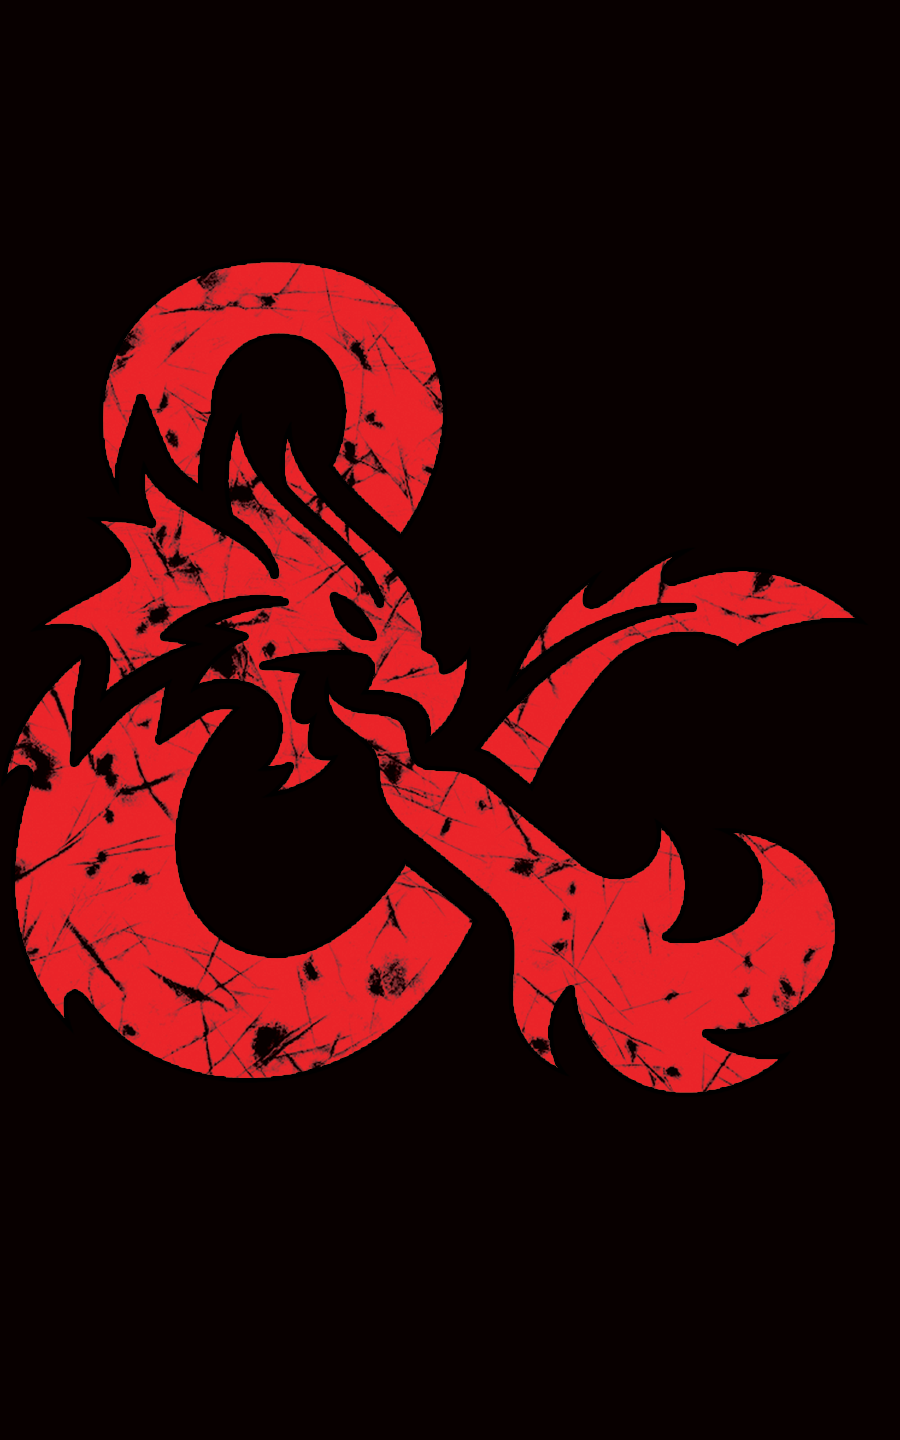 D&D mobile wallpaper 3 | Dungeons and dragons, Shirts ...